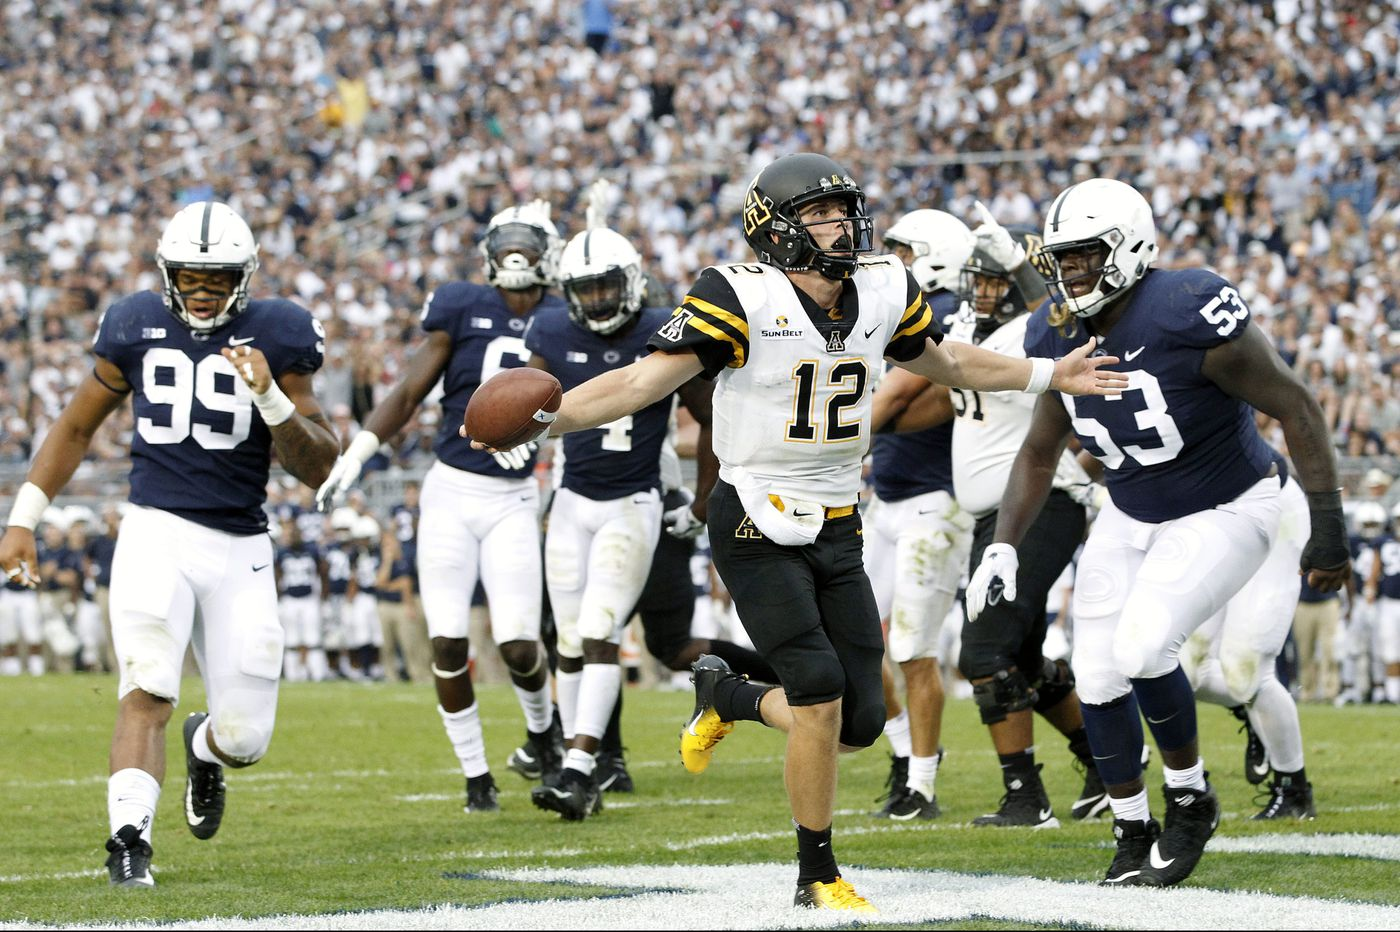 Appalachian State flirts with college football upset history again in Penn State game